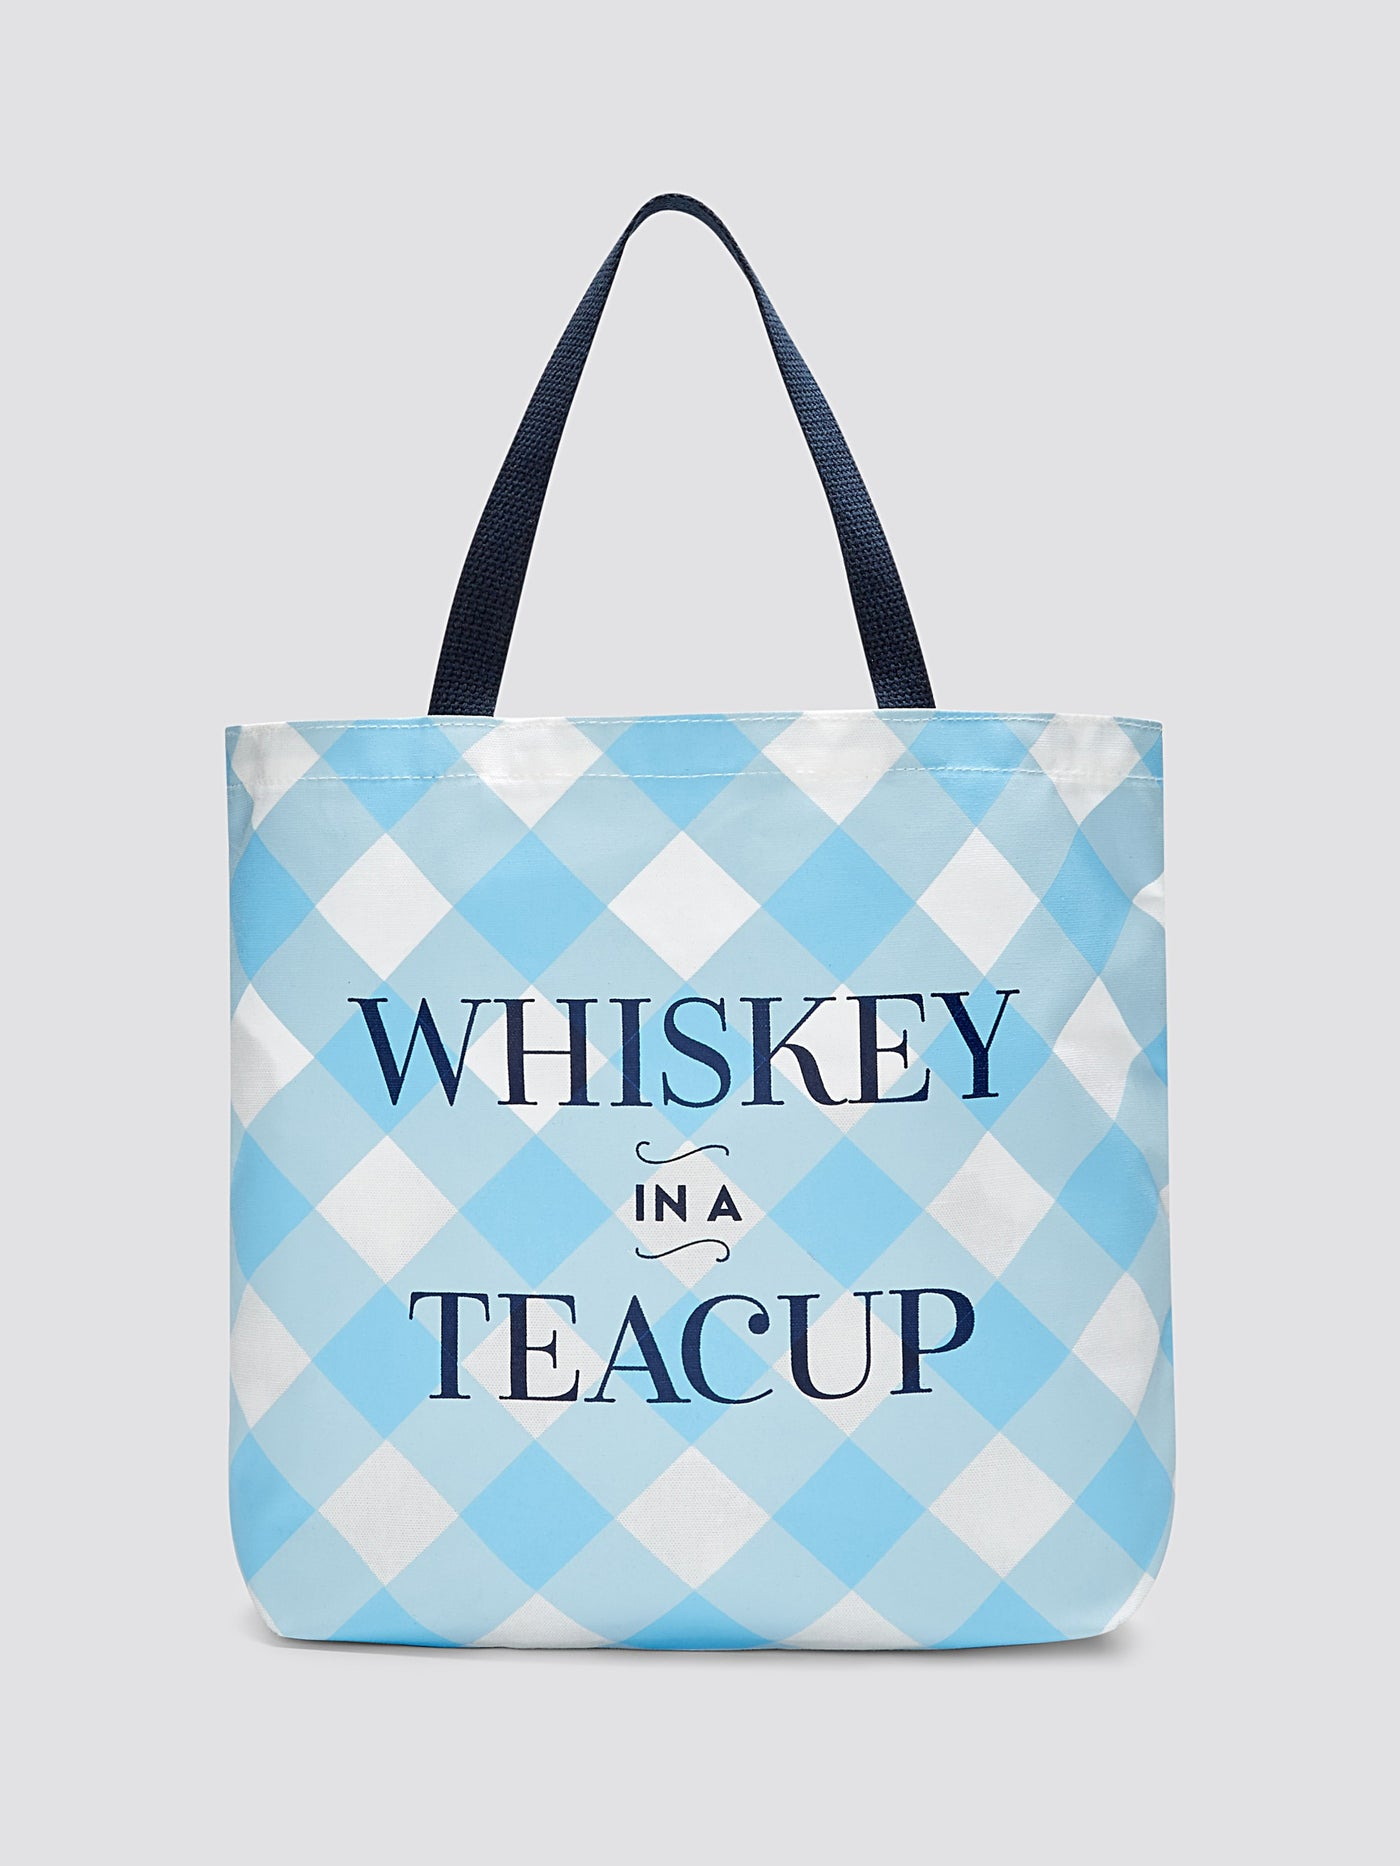 7802dfff2b Whiskey In A Teacup Tote. Created with sketchtool. Hover to